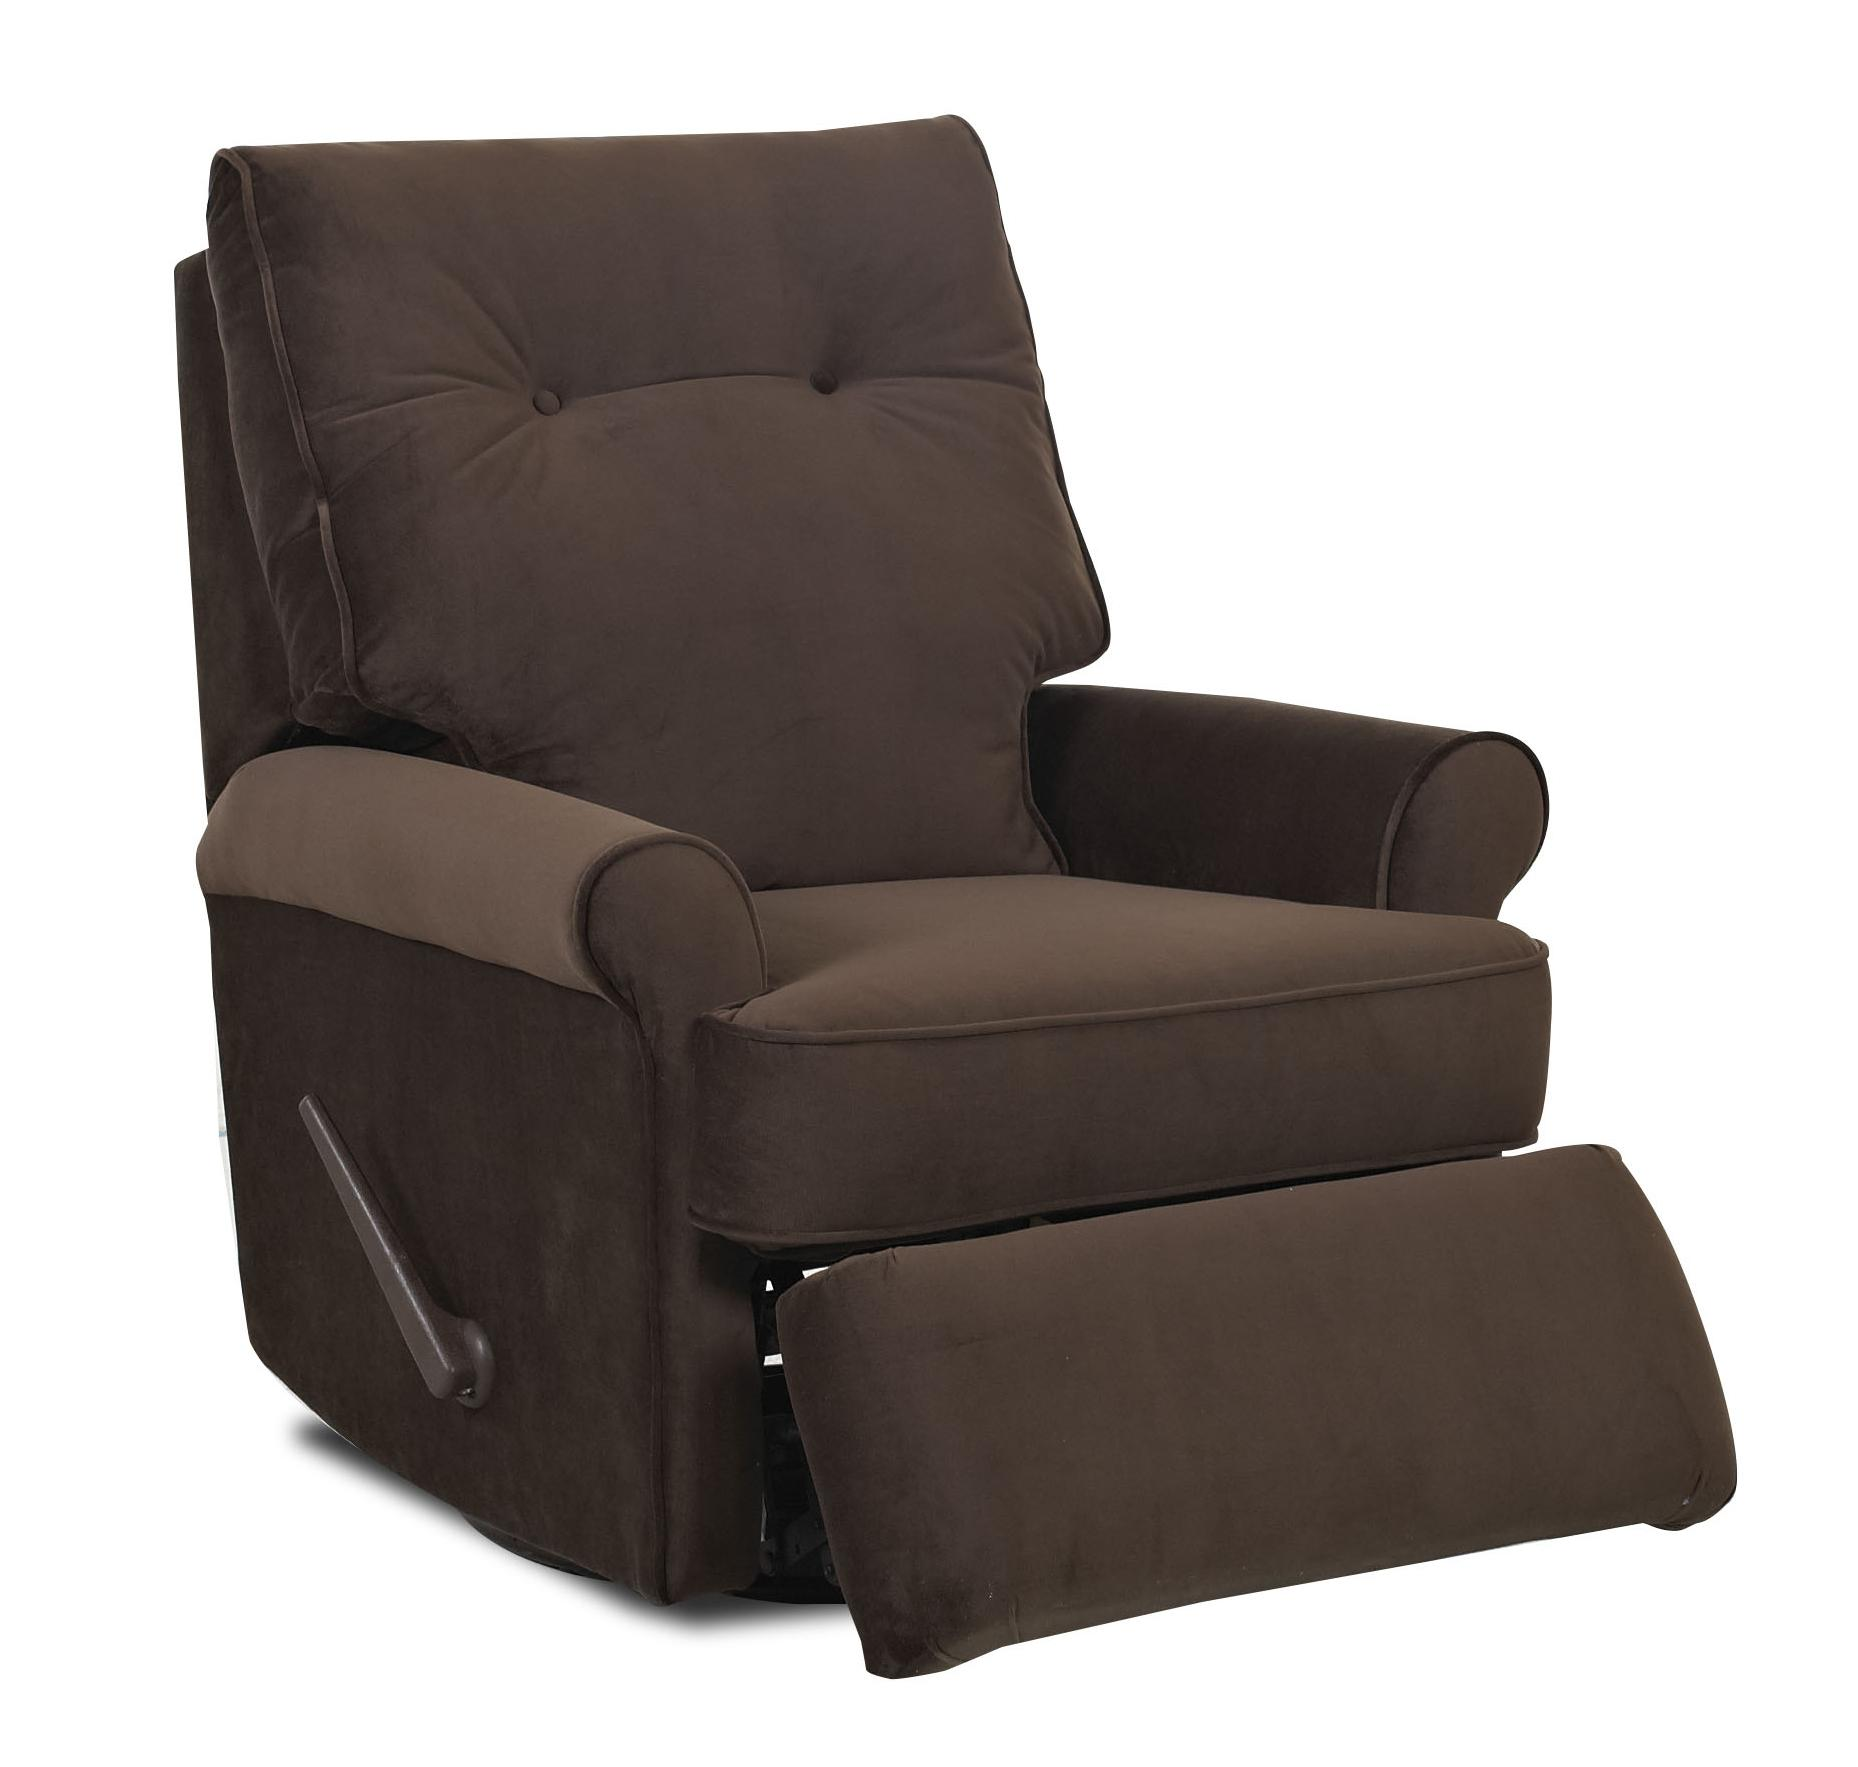 Reclining Rocking Chair Transitional Reclining Rocking Chair With Rolled Arms And